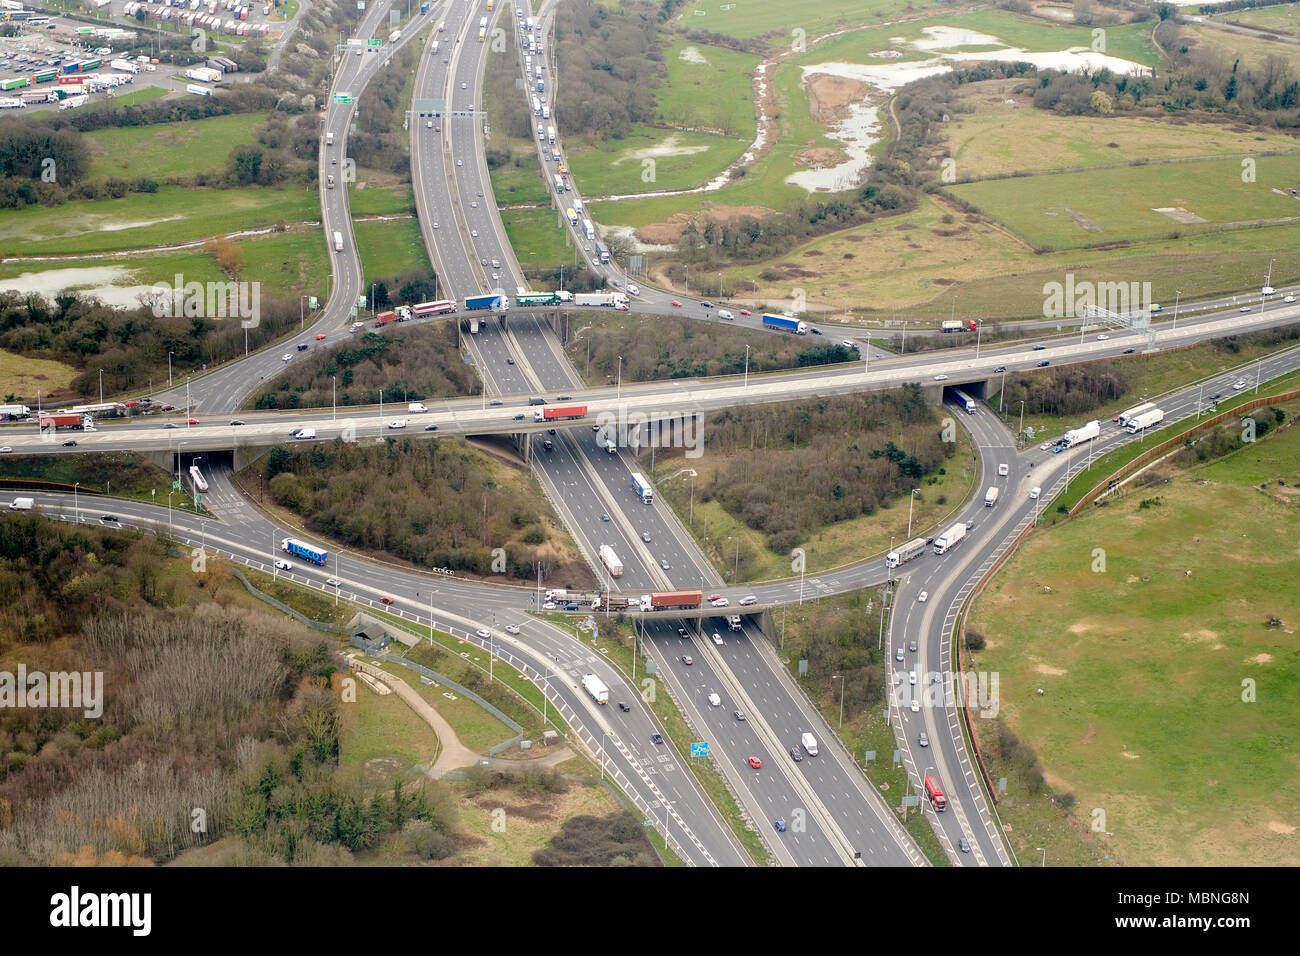 Junction 30 M25. A13 and M25 Junction, from the air, Essex, SE England UK - Stock Image